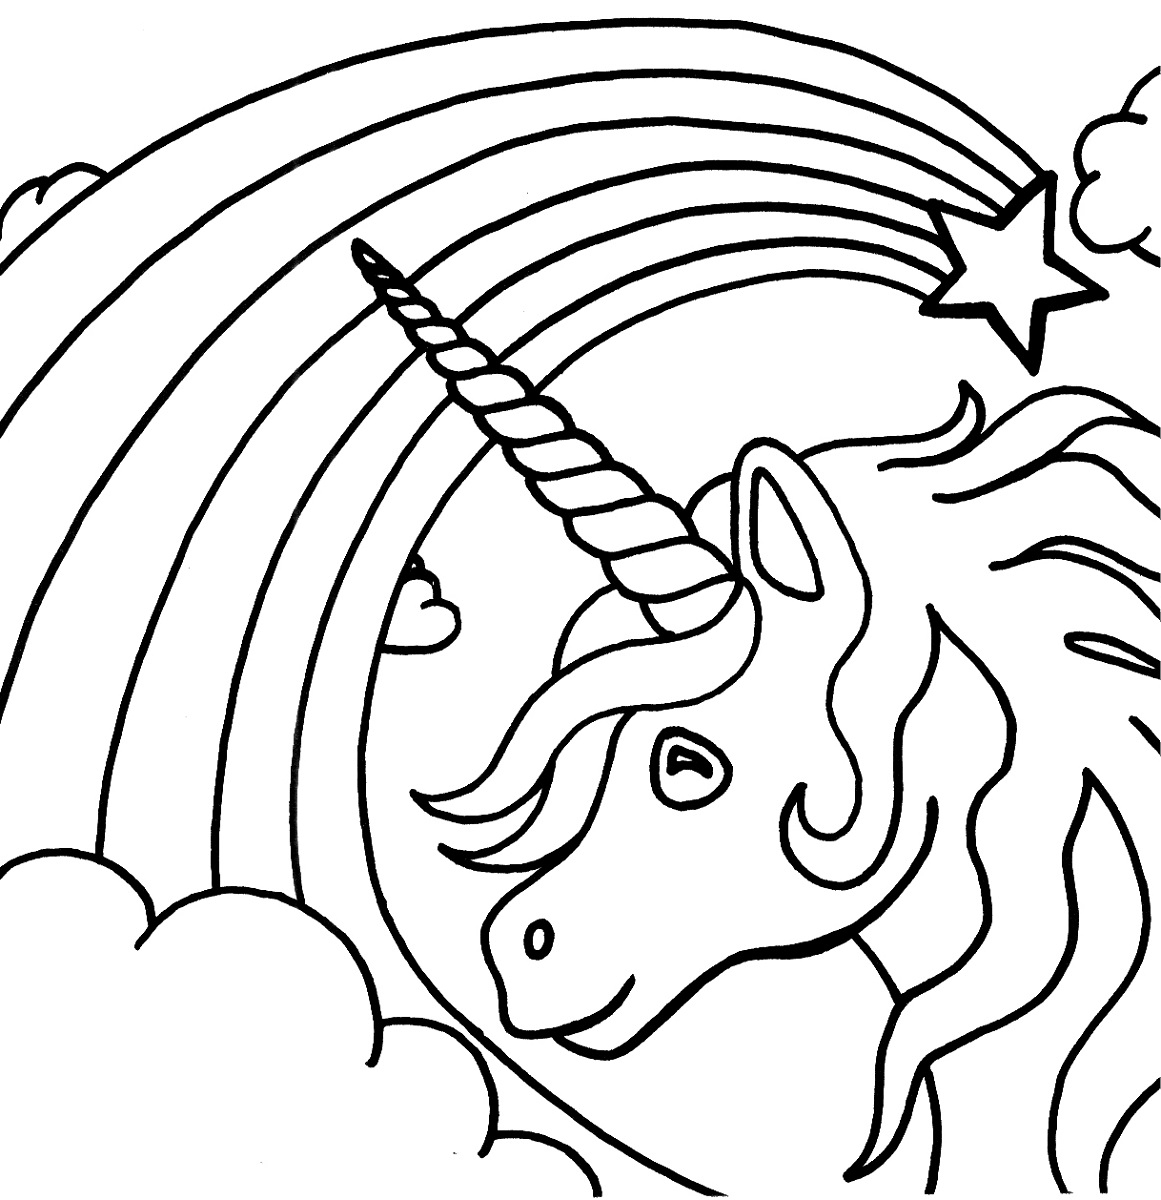 Cute Unicorn Coloring Pages Unicorn Coloring Pages For Kids At Getdrawings Free For